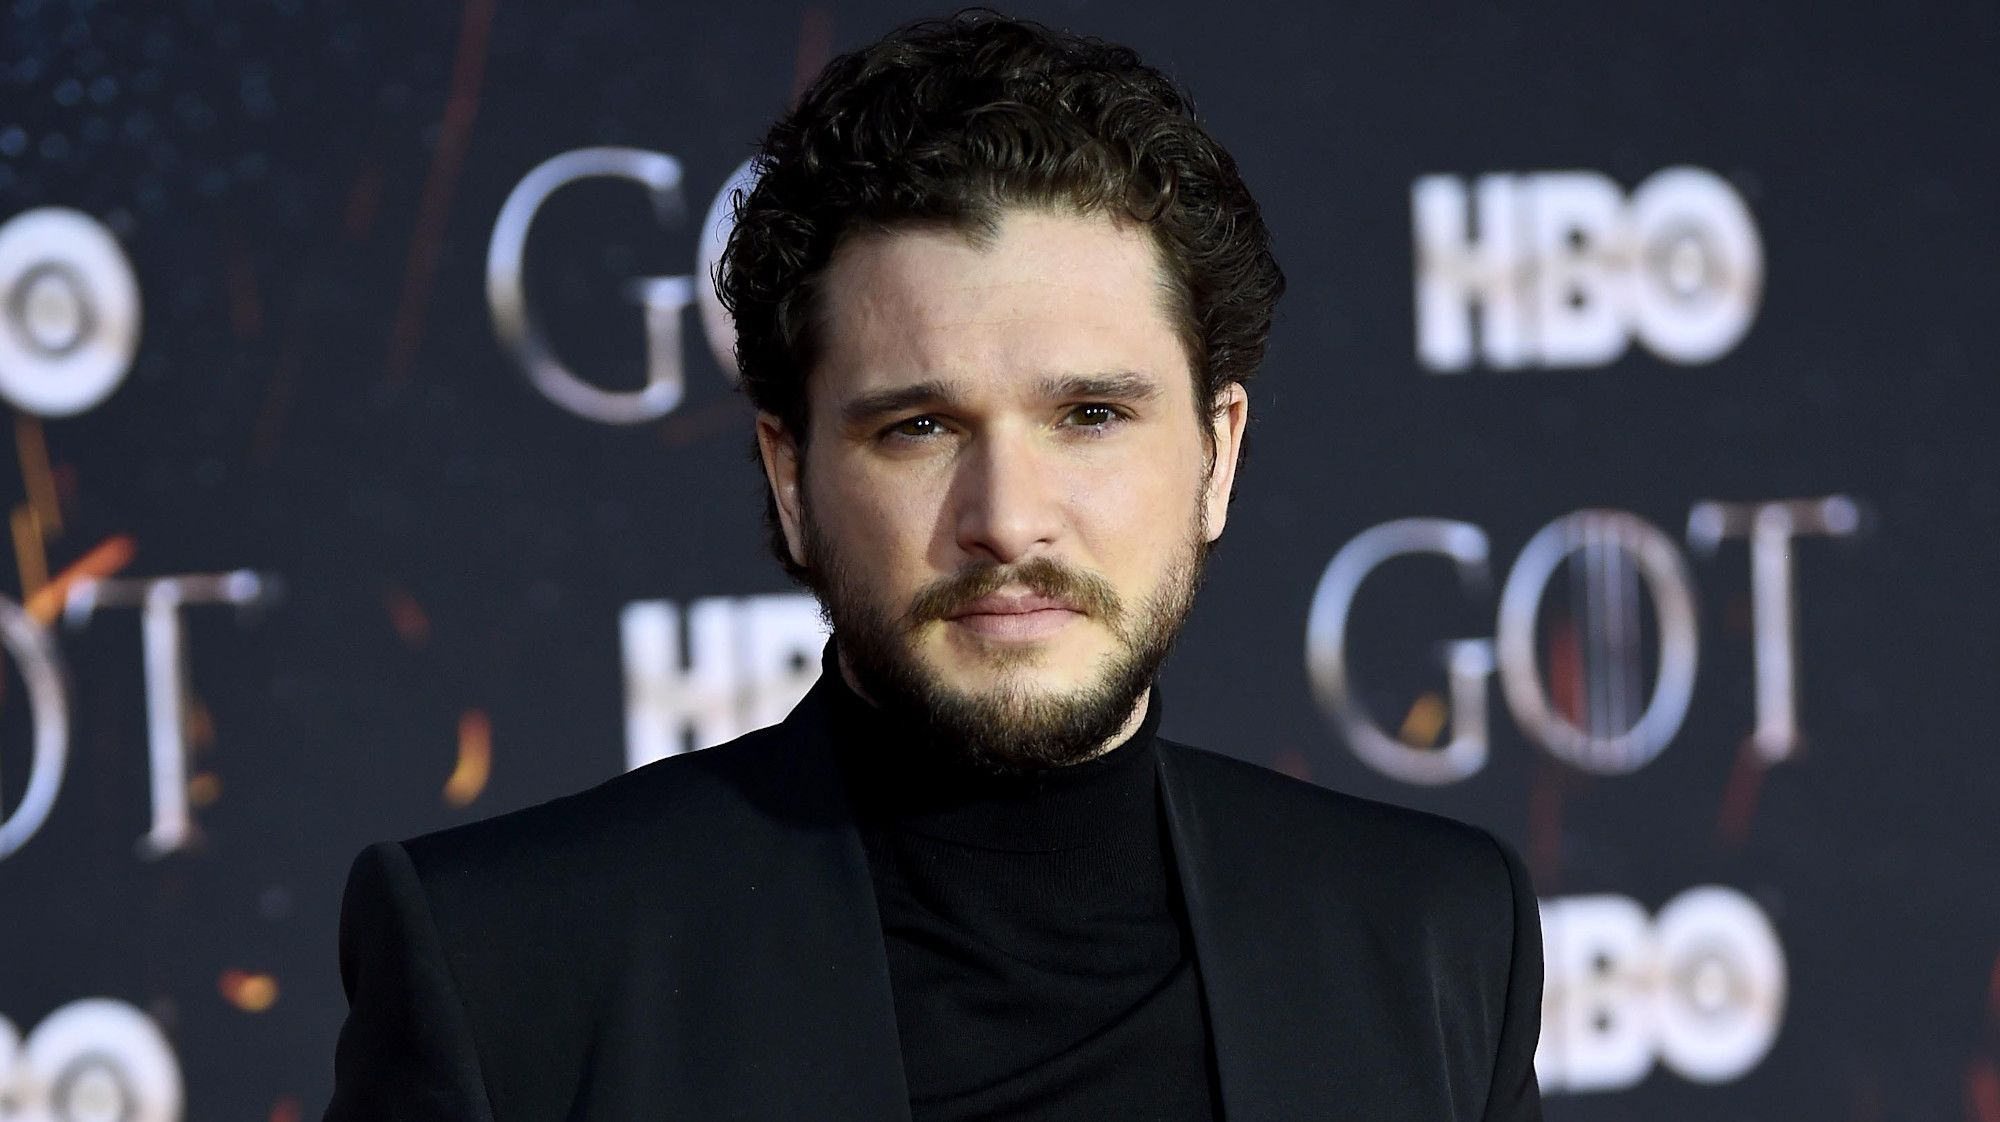 Why Kit Harington Could Become Part of the Avengers After The Eternals